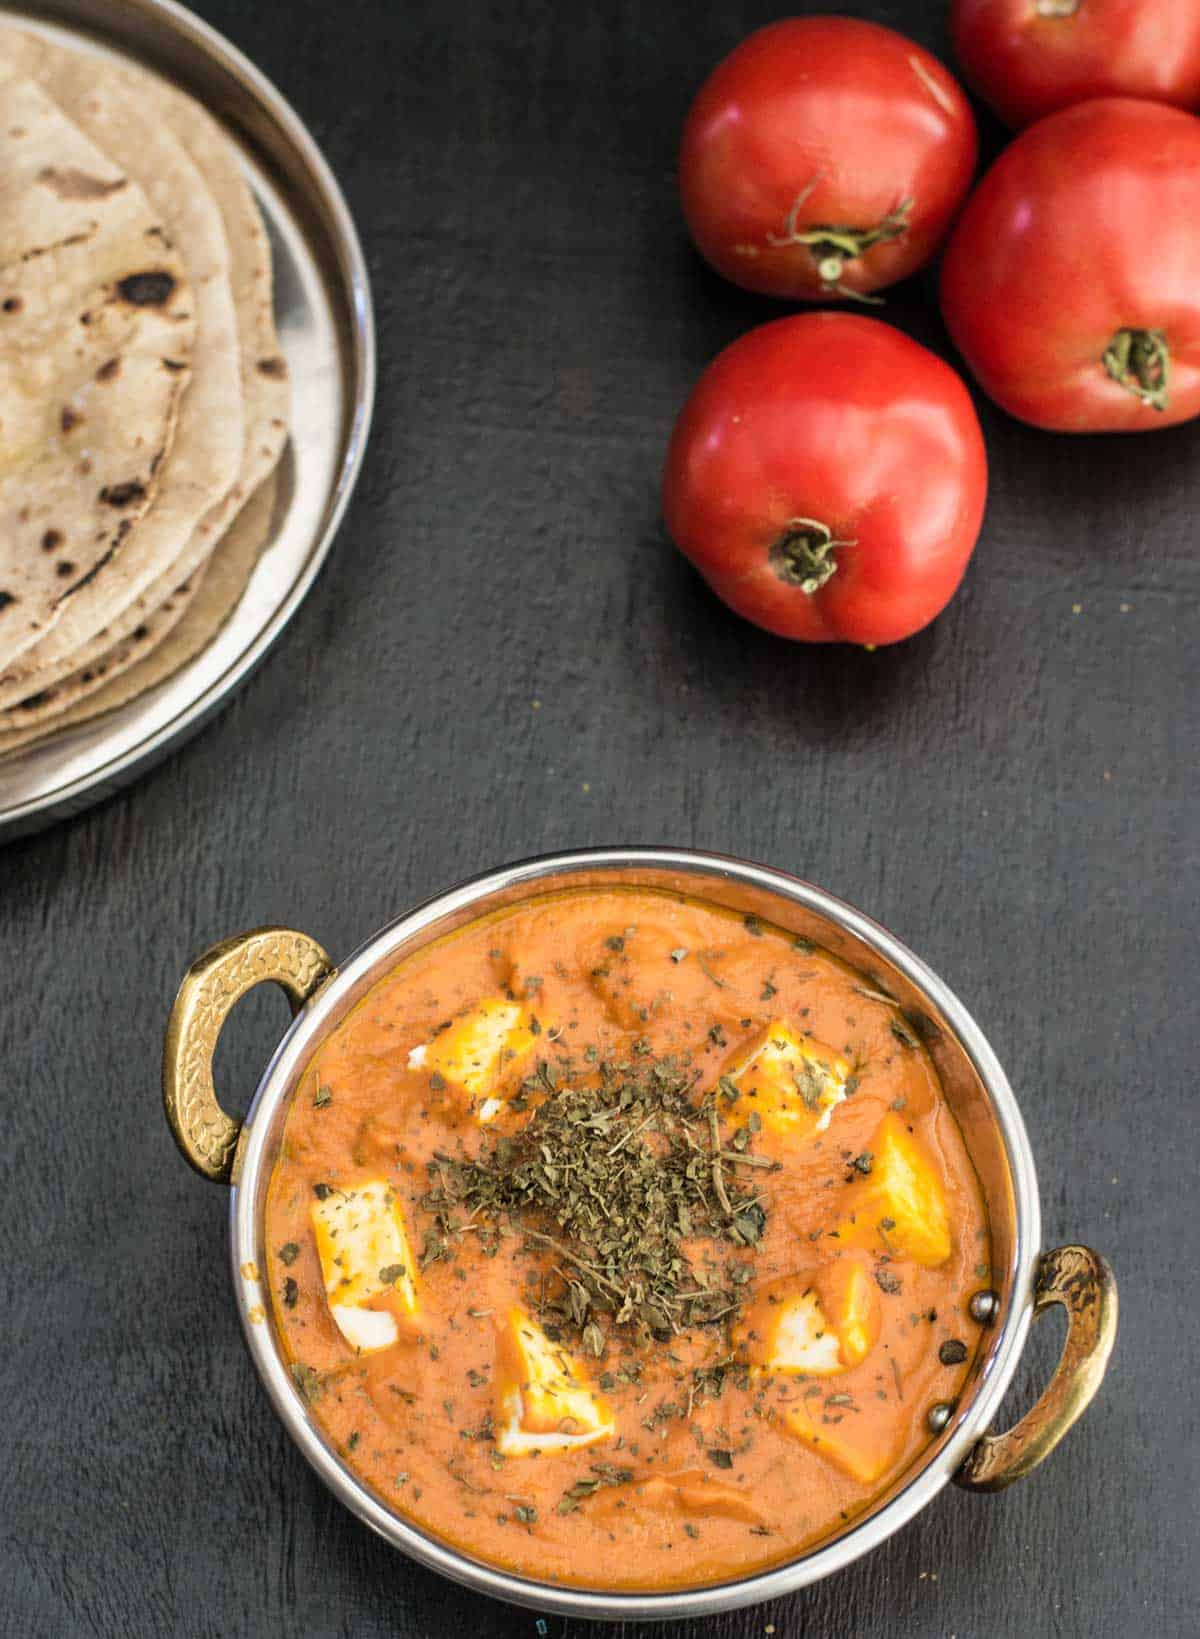 Follow this easy and simplified recipe to make Restaurant style Paneer Butter Masala or Paneer Makhani at home!